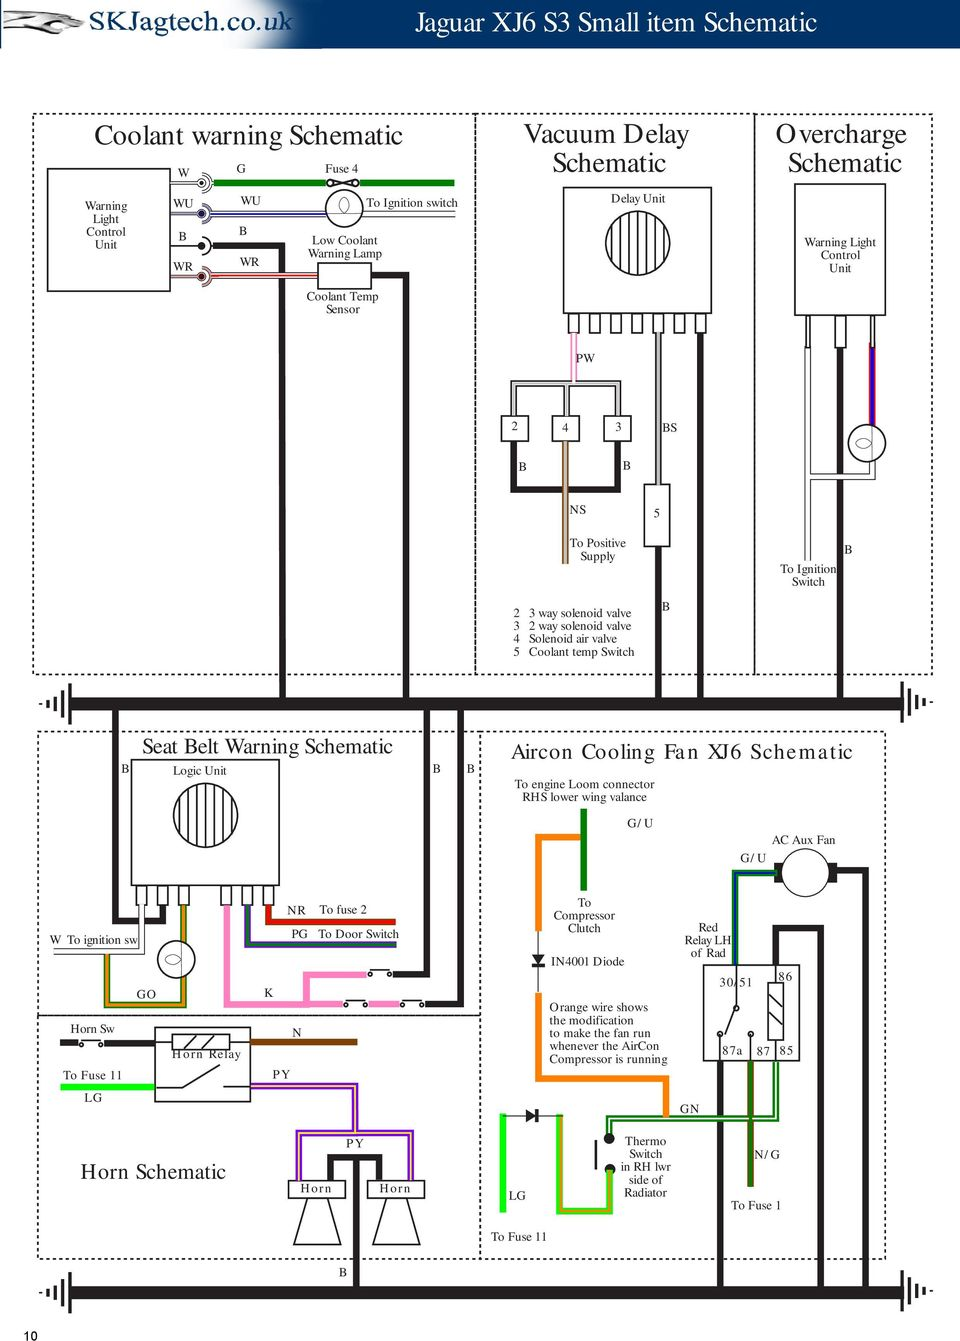 Jaguar Xj6 Series 3 Schematic Drawings Pdf Tail Light Wiring Diagram Along With Electric Fan Relay Warning Logic Unit Aircon Cooling To Engine Loom Connector Rhs Lower Wing